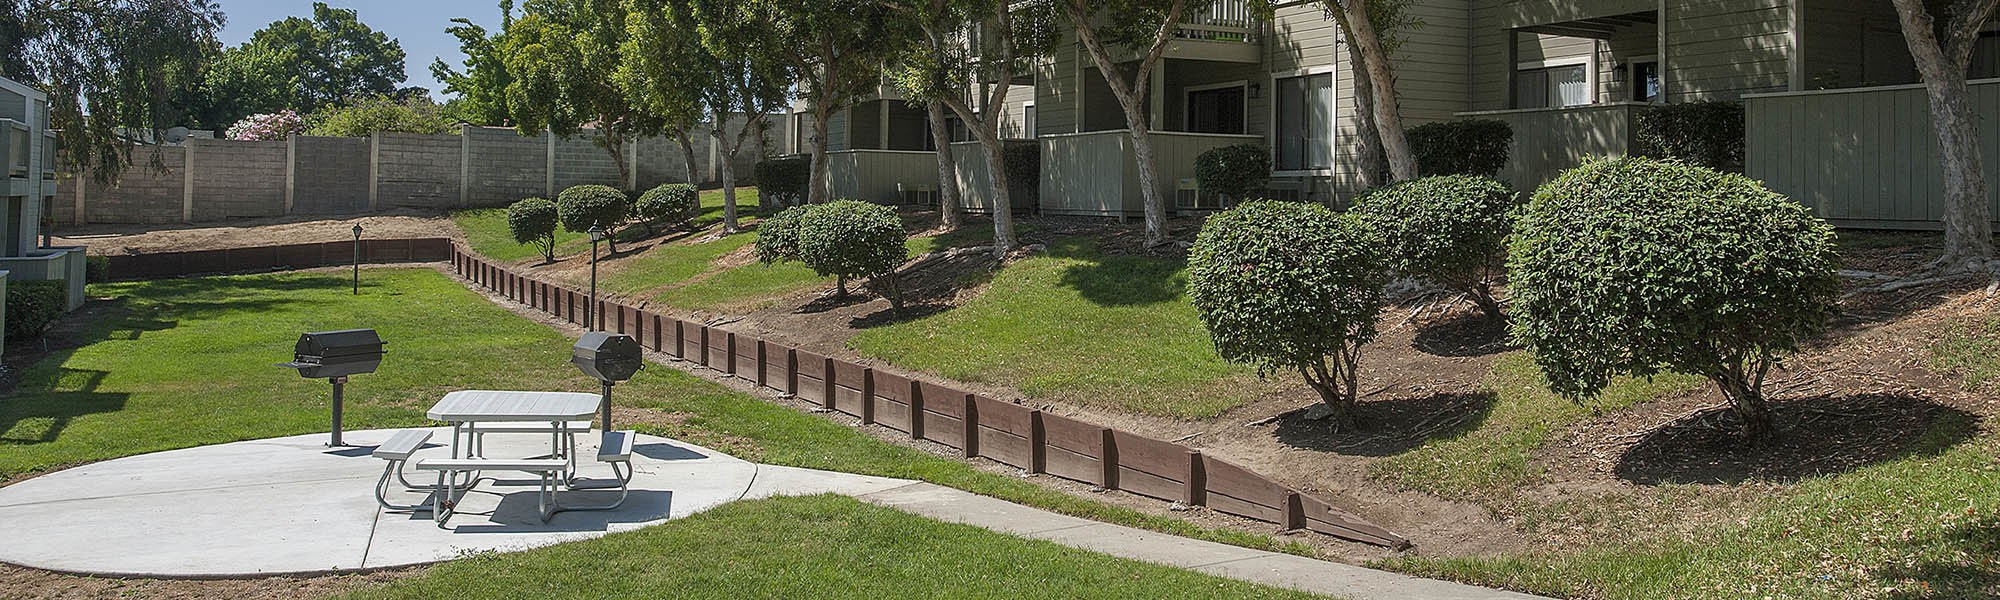 Learn about our neighborhood at Sandpiper Village Apartment Homes in Vacaville, CA on our website